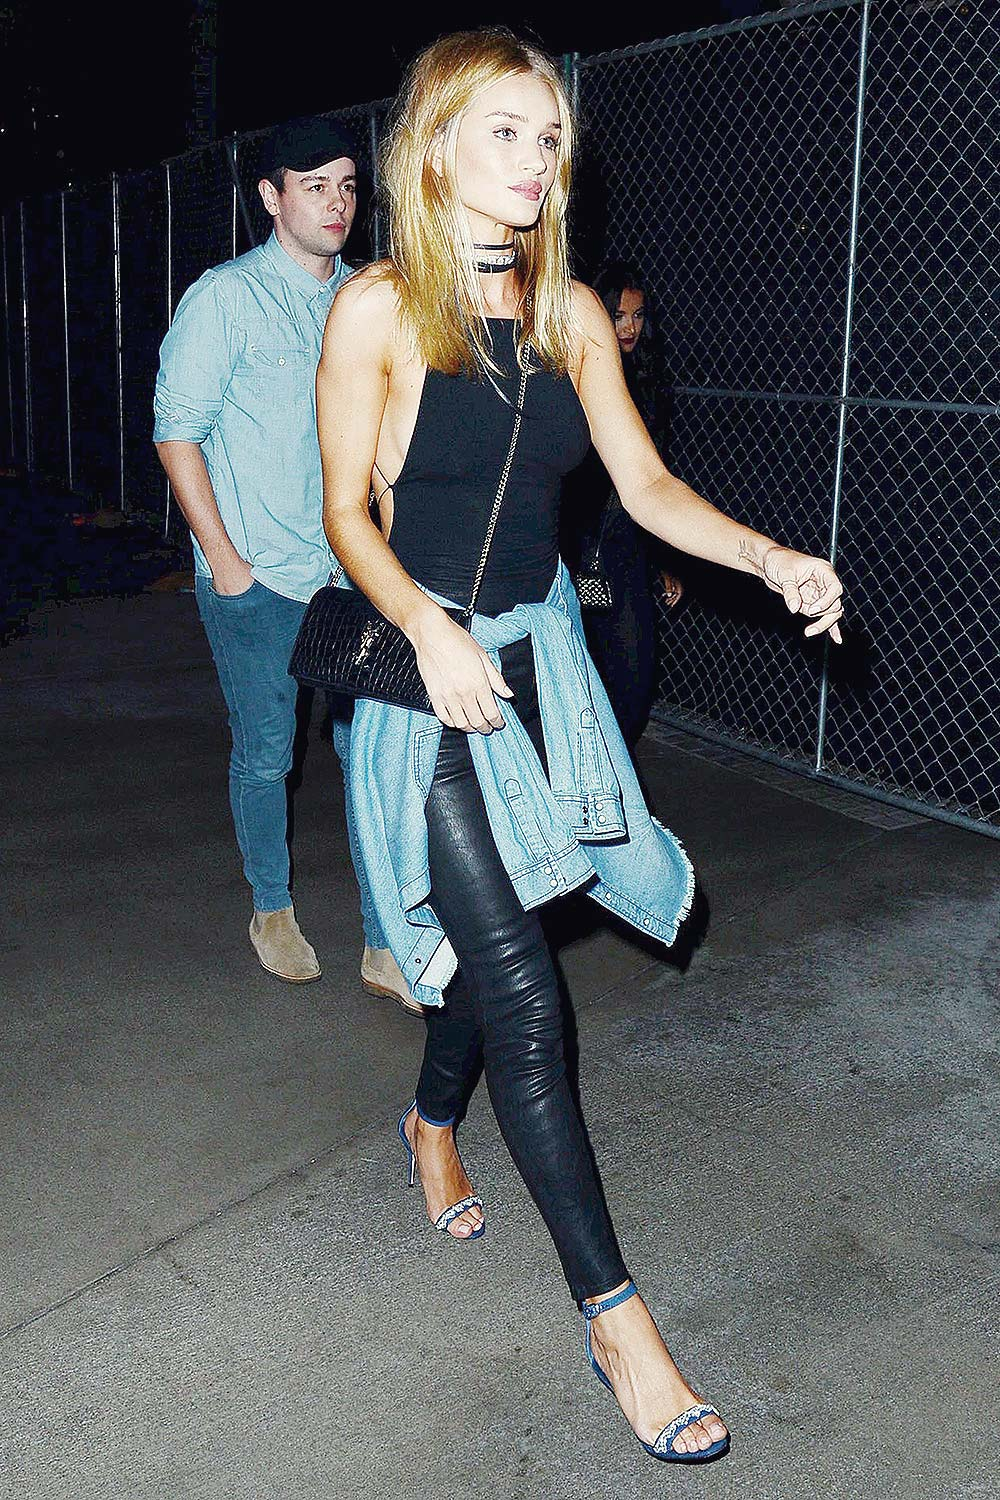 Rosie Huntington-Whiteley arriving at Drake's Concert